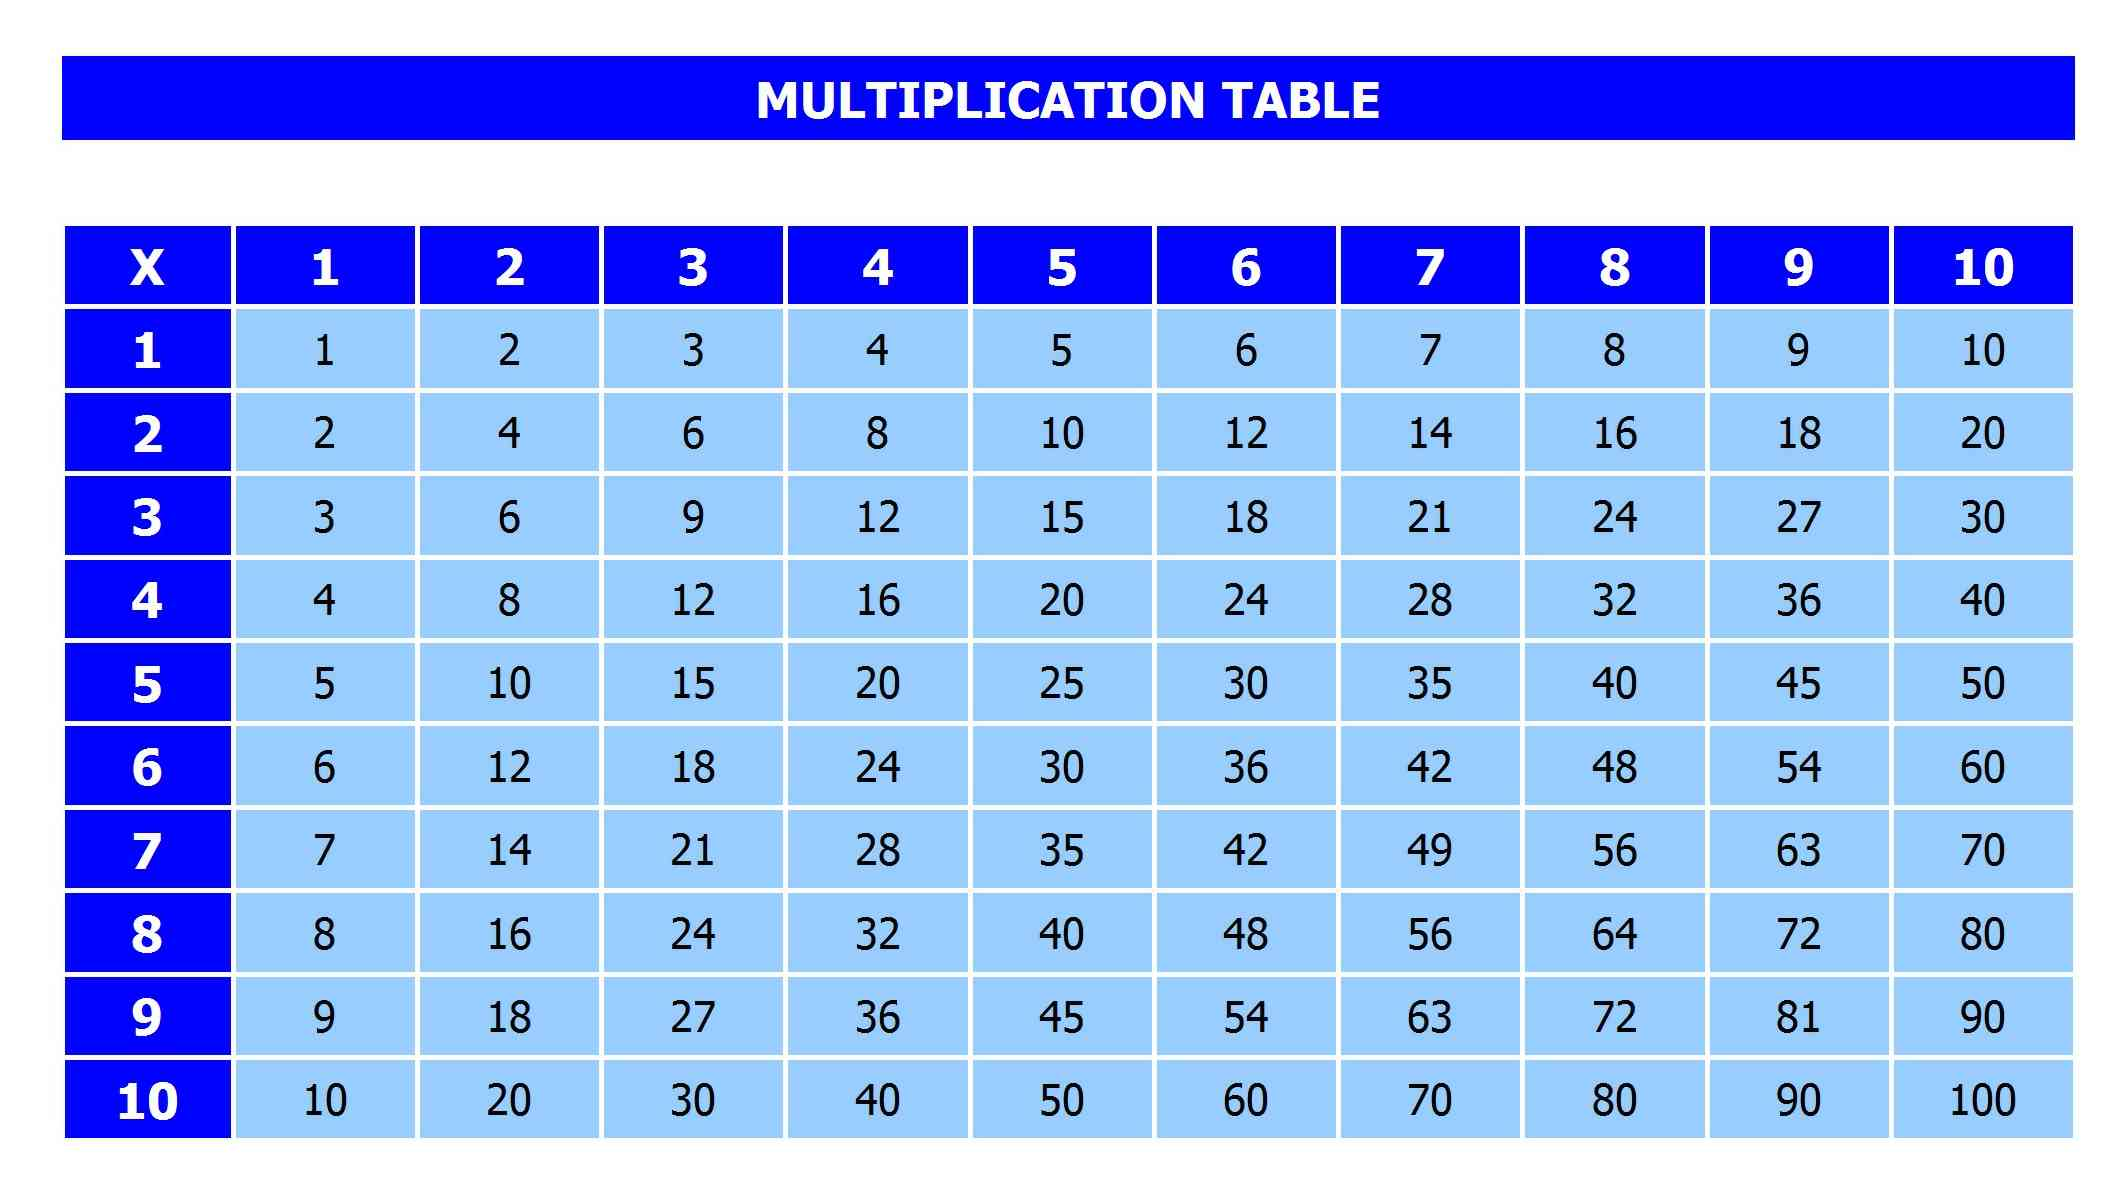 Worksheets Tables From 1 To 10 math tables 1 to 10 reocurent multiplication table jpg